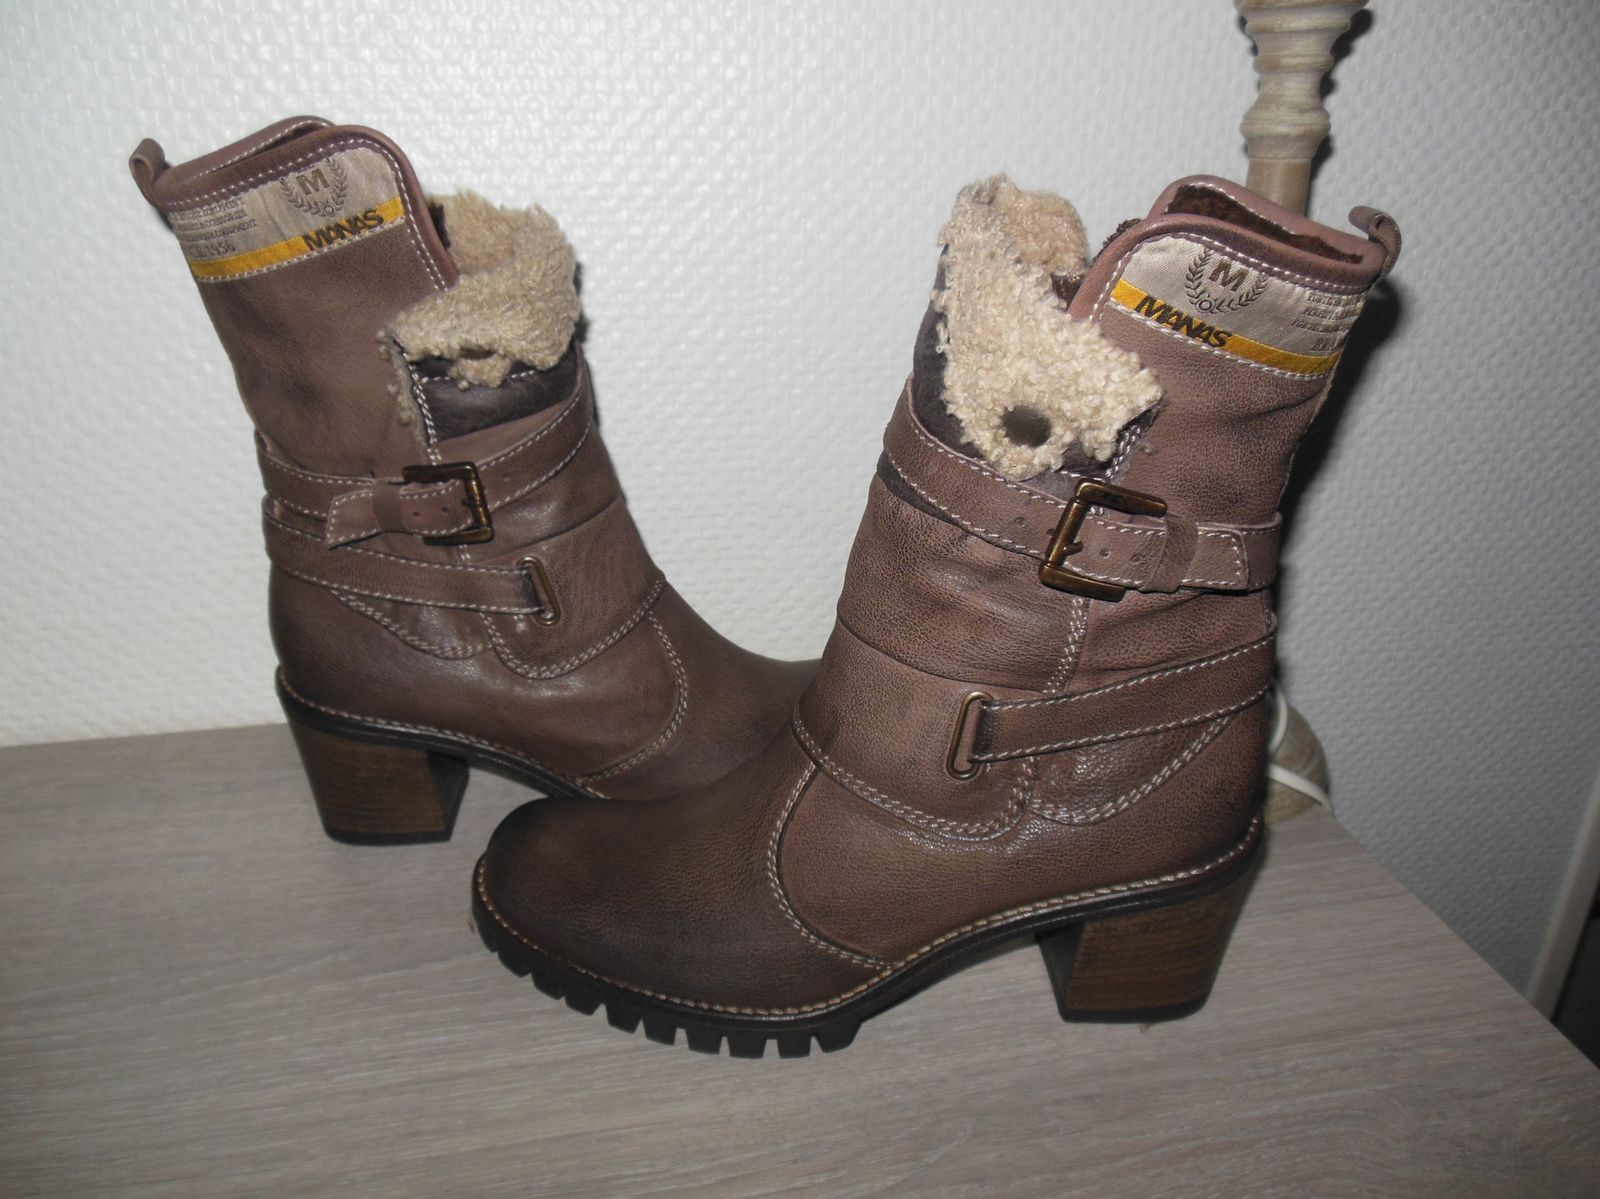 Bottines en cuir et mouton - Manas (nouvelle collection)